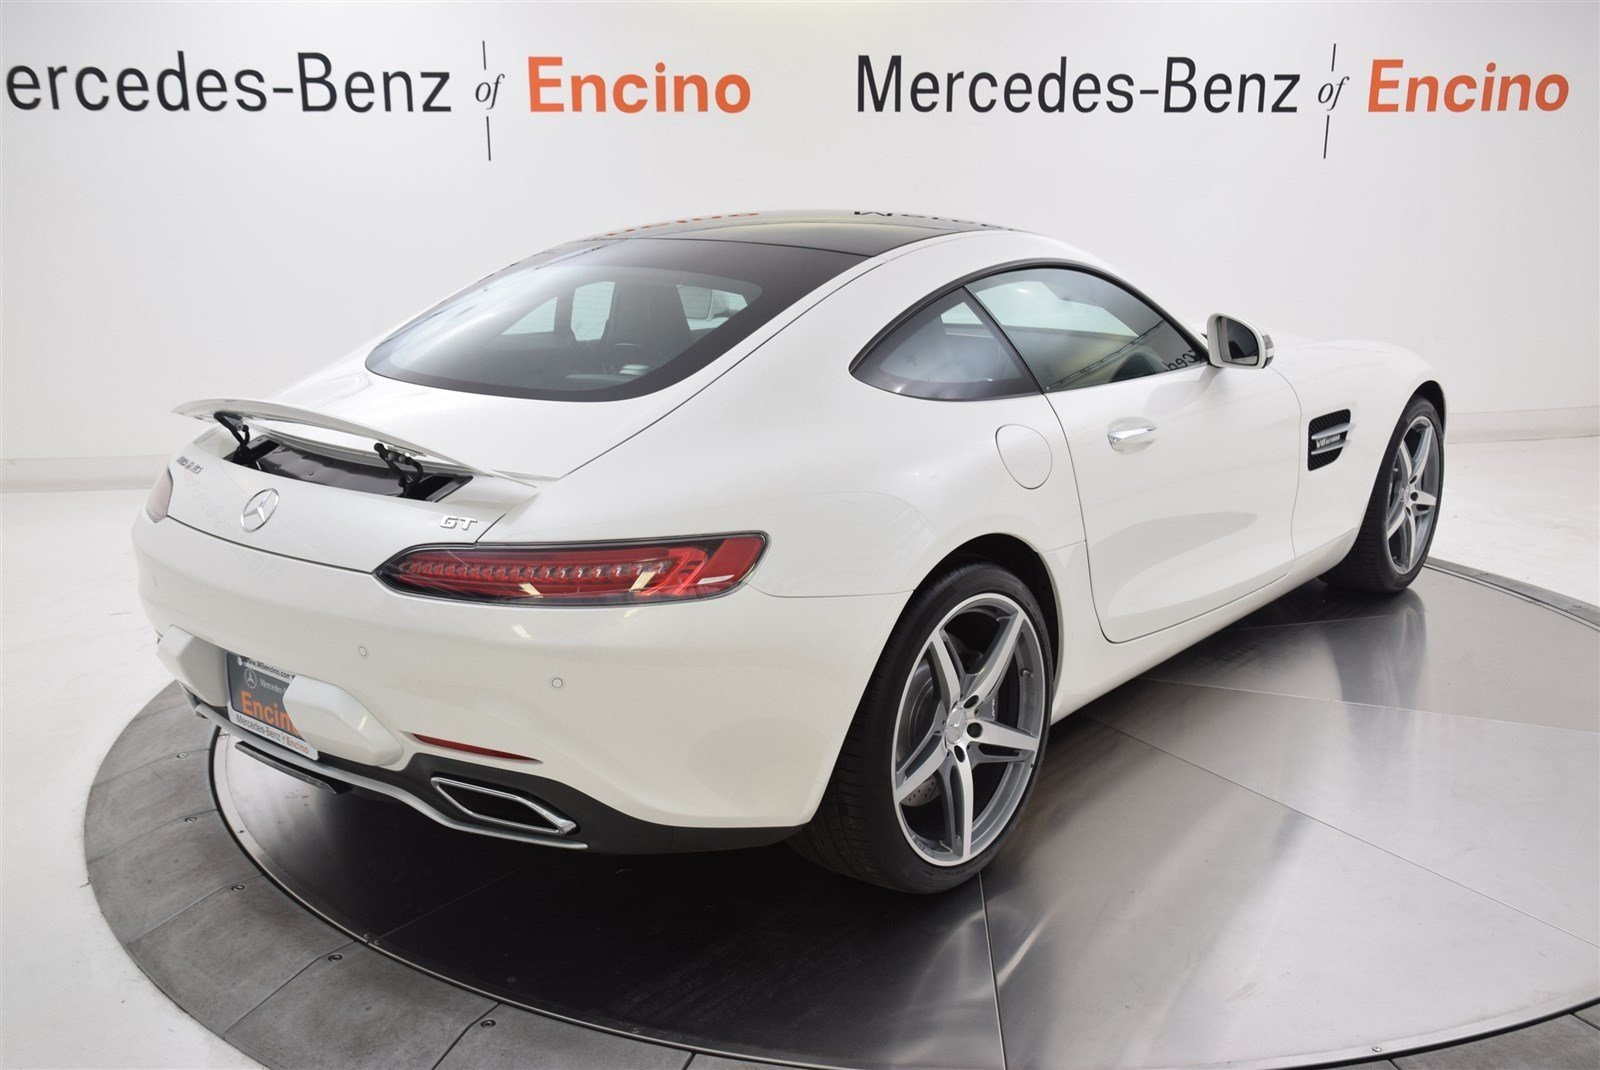 New 2017 mercedes benz amg gt coupe in encino 55468 for 2017 mercedes benz amg gt msrp